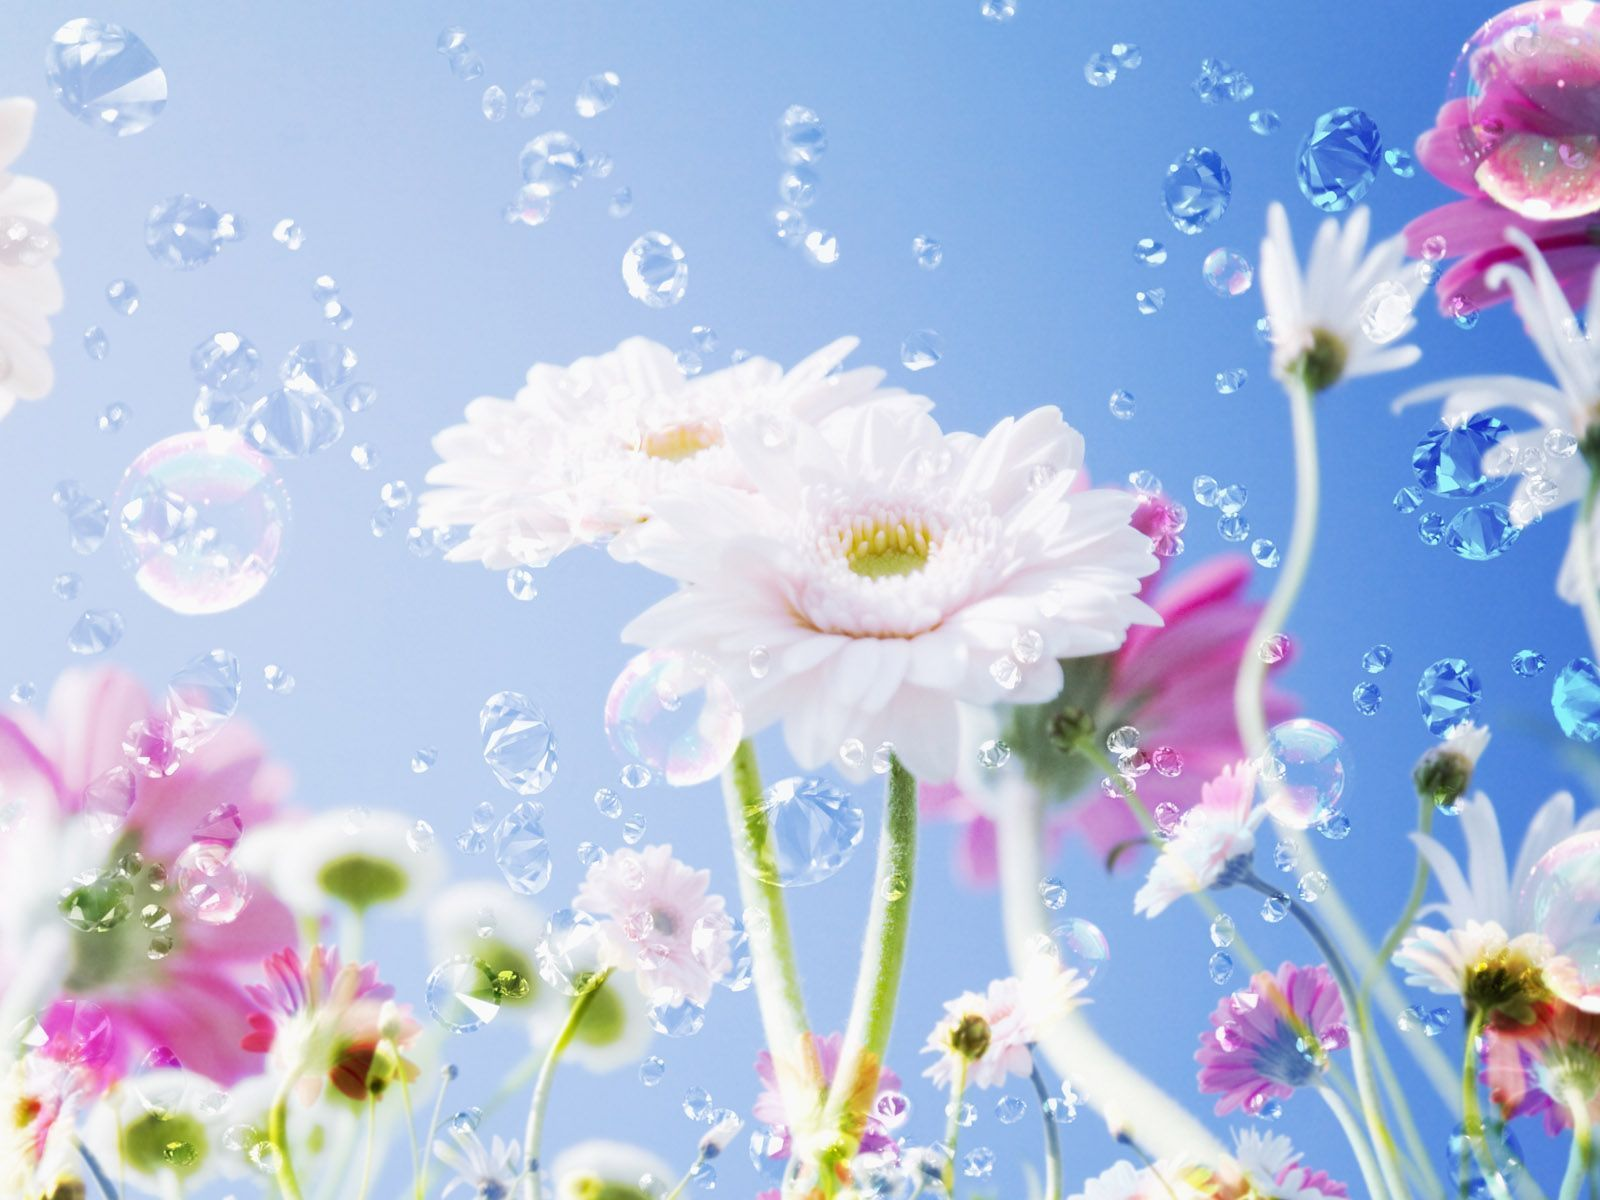 Hd wallpaper beautiful - Beautiful And Attractive Flowers Wallpapers For Desktopphotography